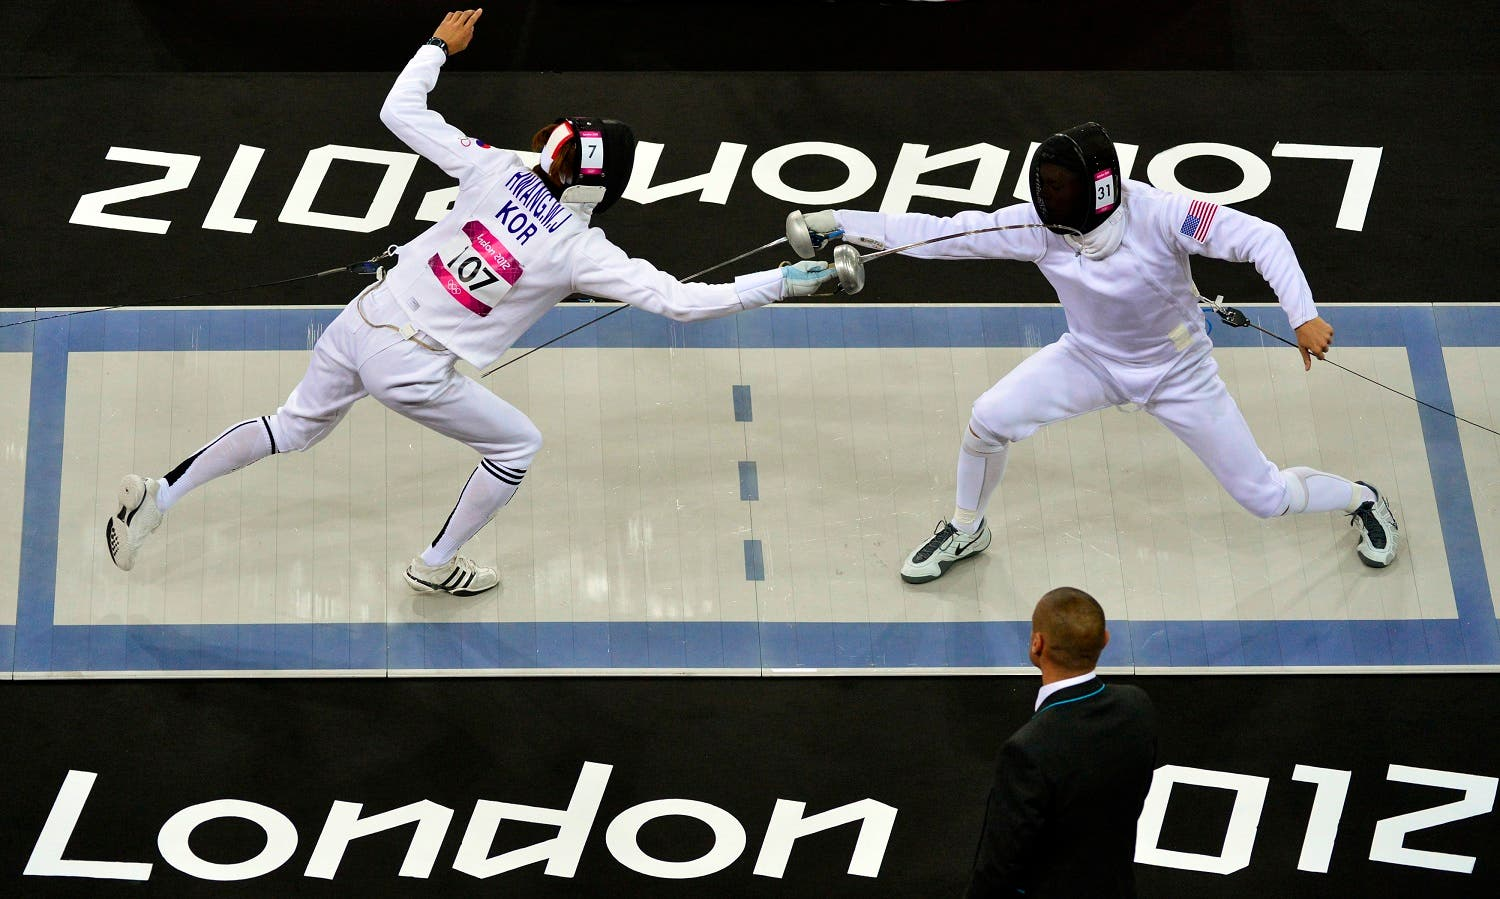 South Korea's Hwang Woojin (L) competes against Dennis Bowsher of the U.S. during the fencing event of the men's modern pentathlon during the London 2012 Olympics at the Copper Box August 11, 2012. REUTERS/Toby Melville (BRITAIN - Tags: SPORT OLYMPICS PORT MODERN PENTATHLON SPORT FENCING)